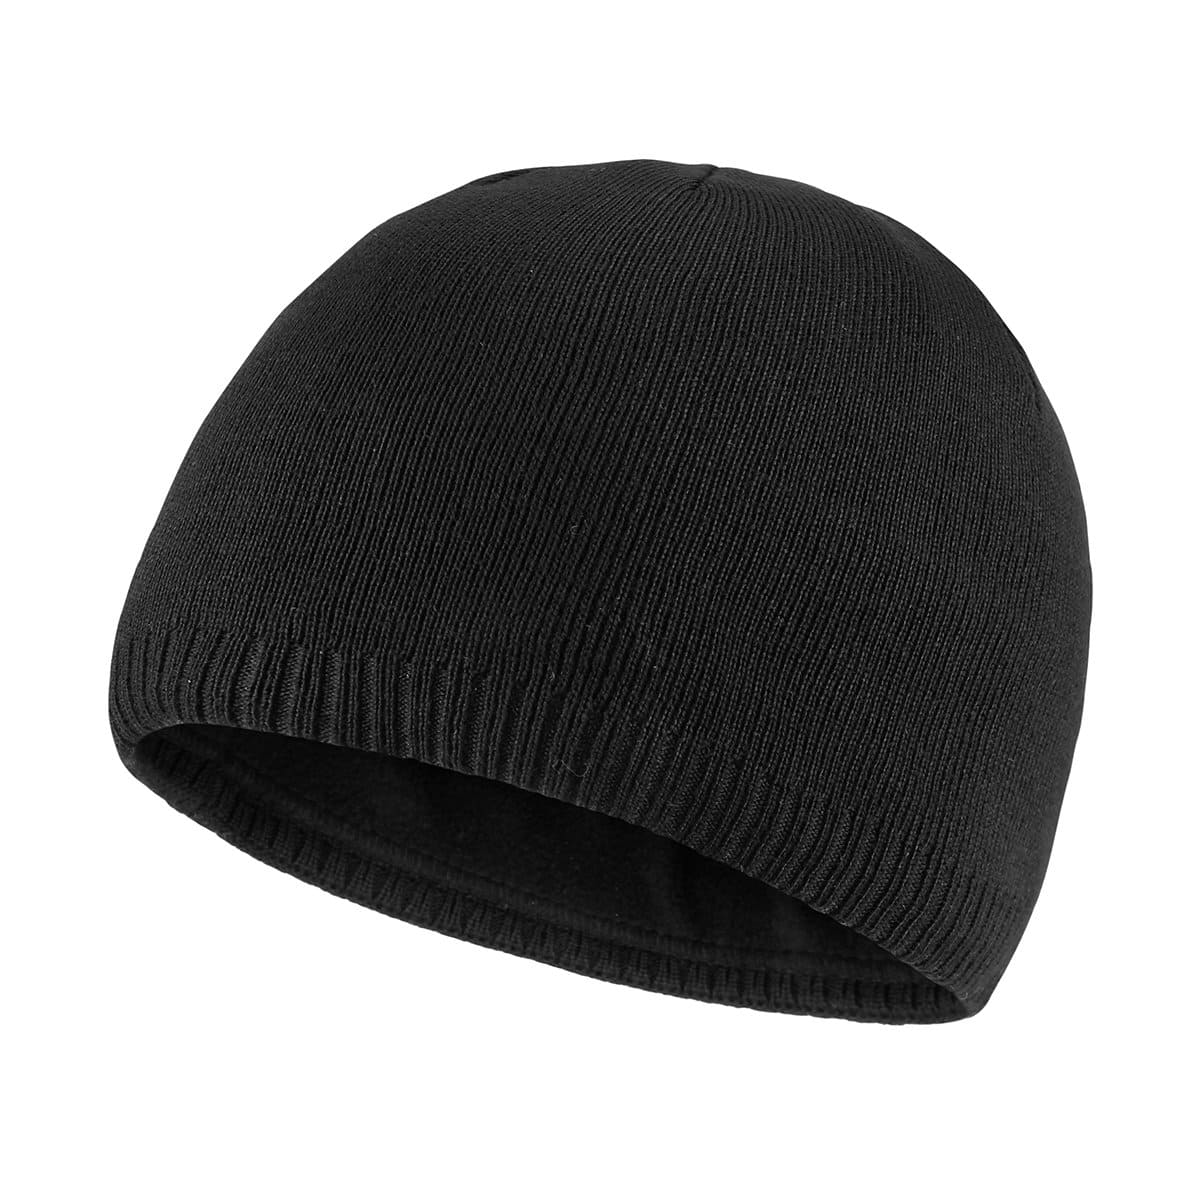 Fleece-lined, Warm Winter Knit Beanie (Various Color)  Free Shipping w/Prime @Amazon - $8.32